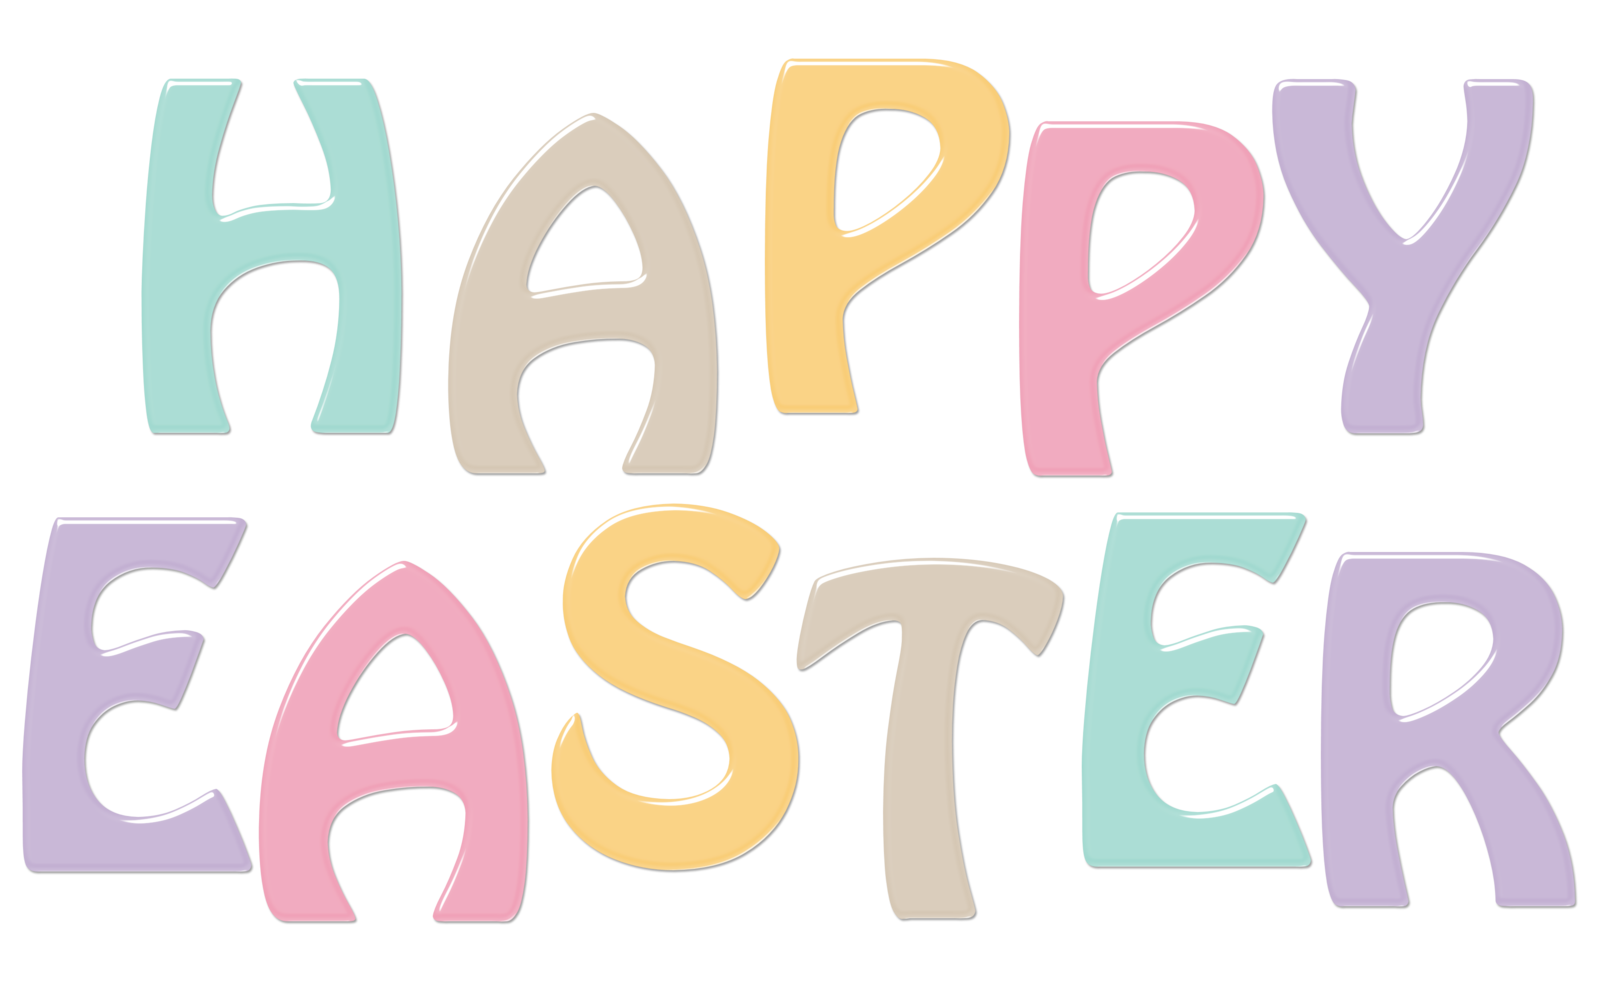 Happy easter fun pictures. Words clipart happiness